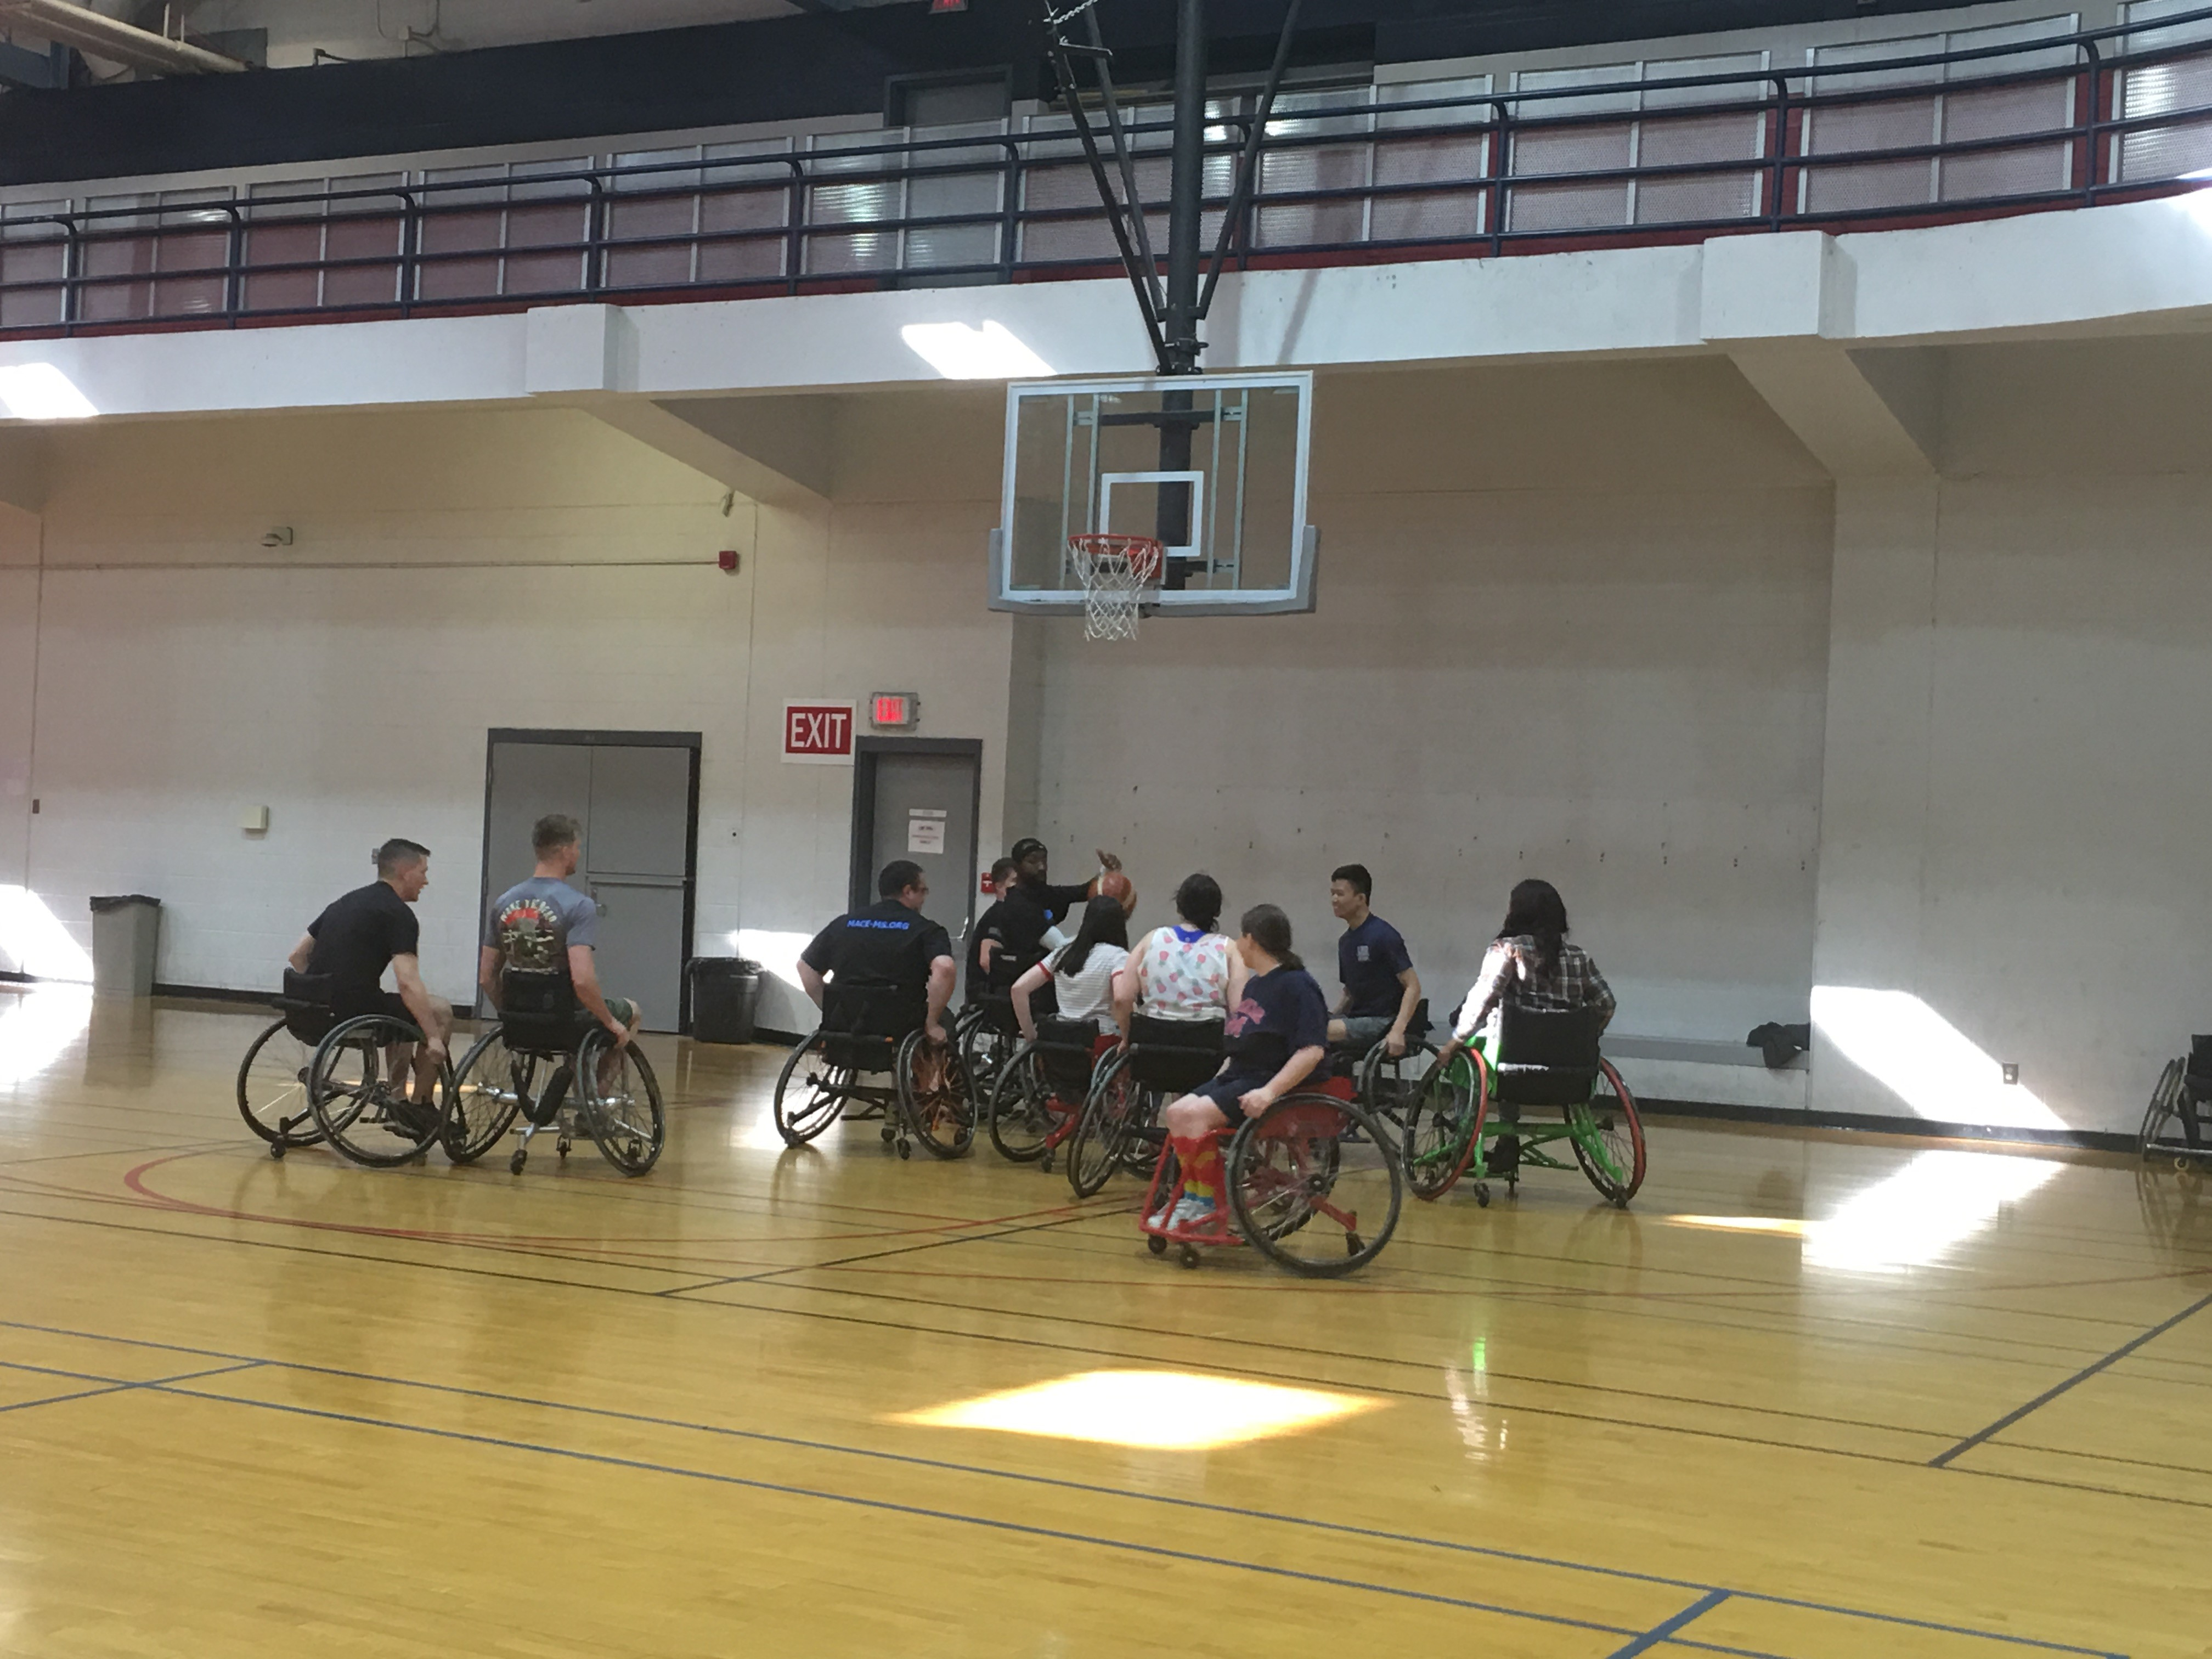 Robin Yekaitis (foreground) plays Wheelchair Basketball during Disability History Month.